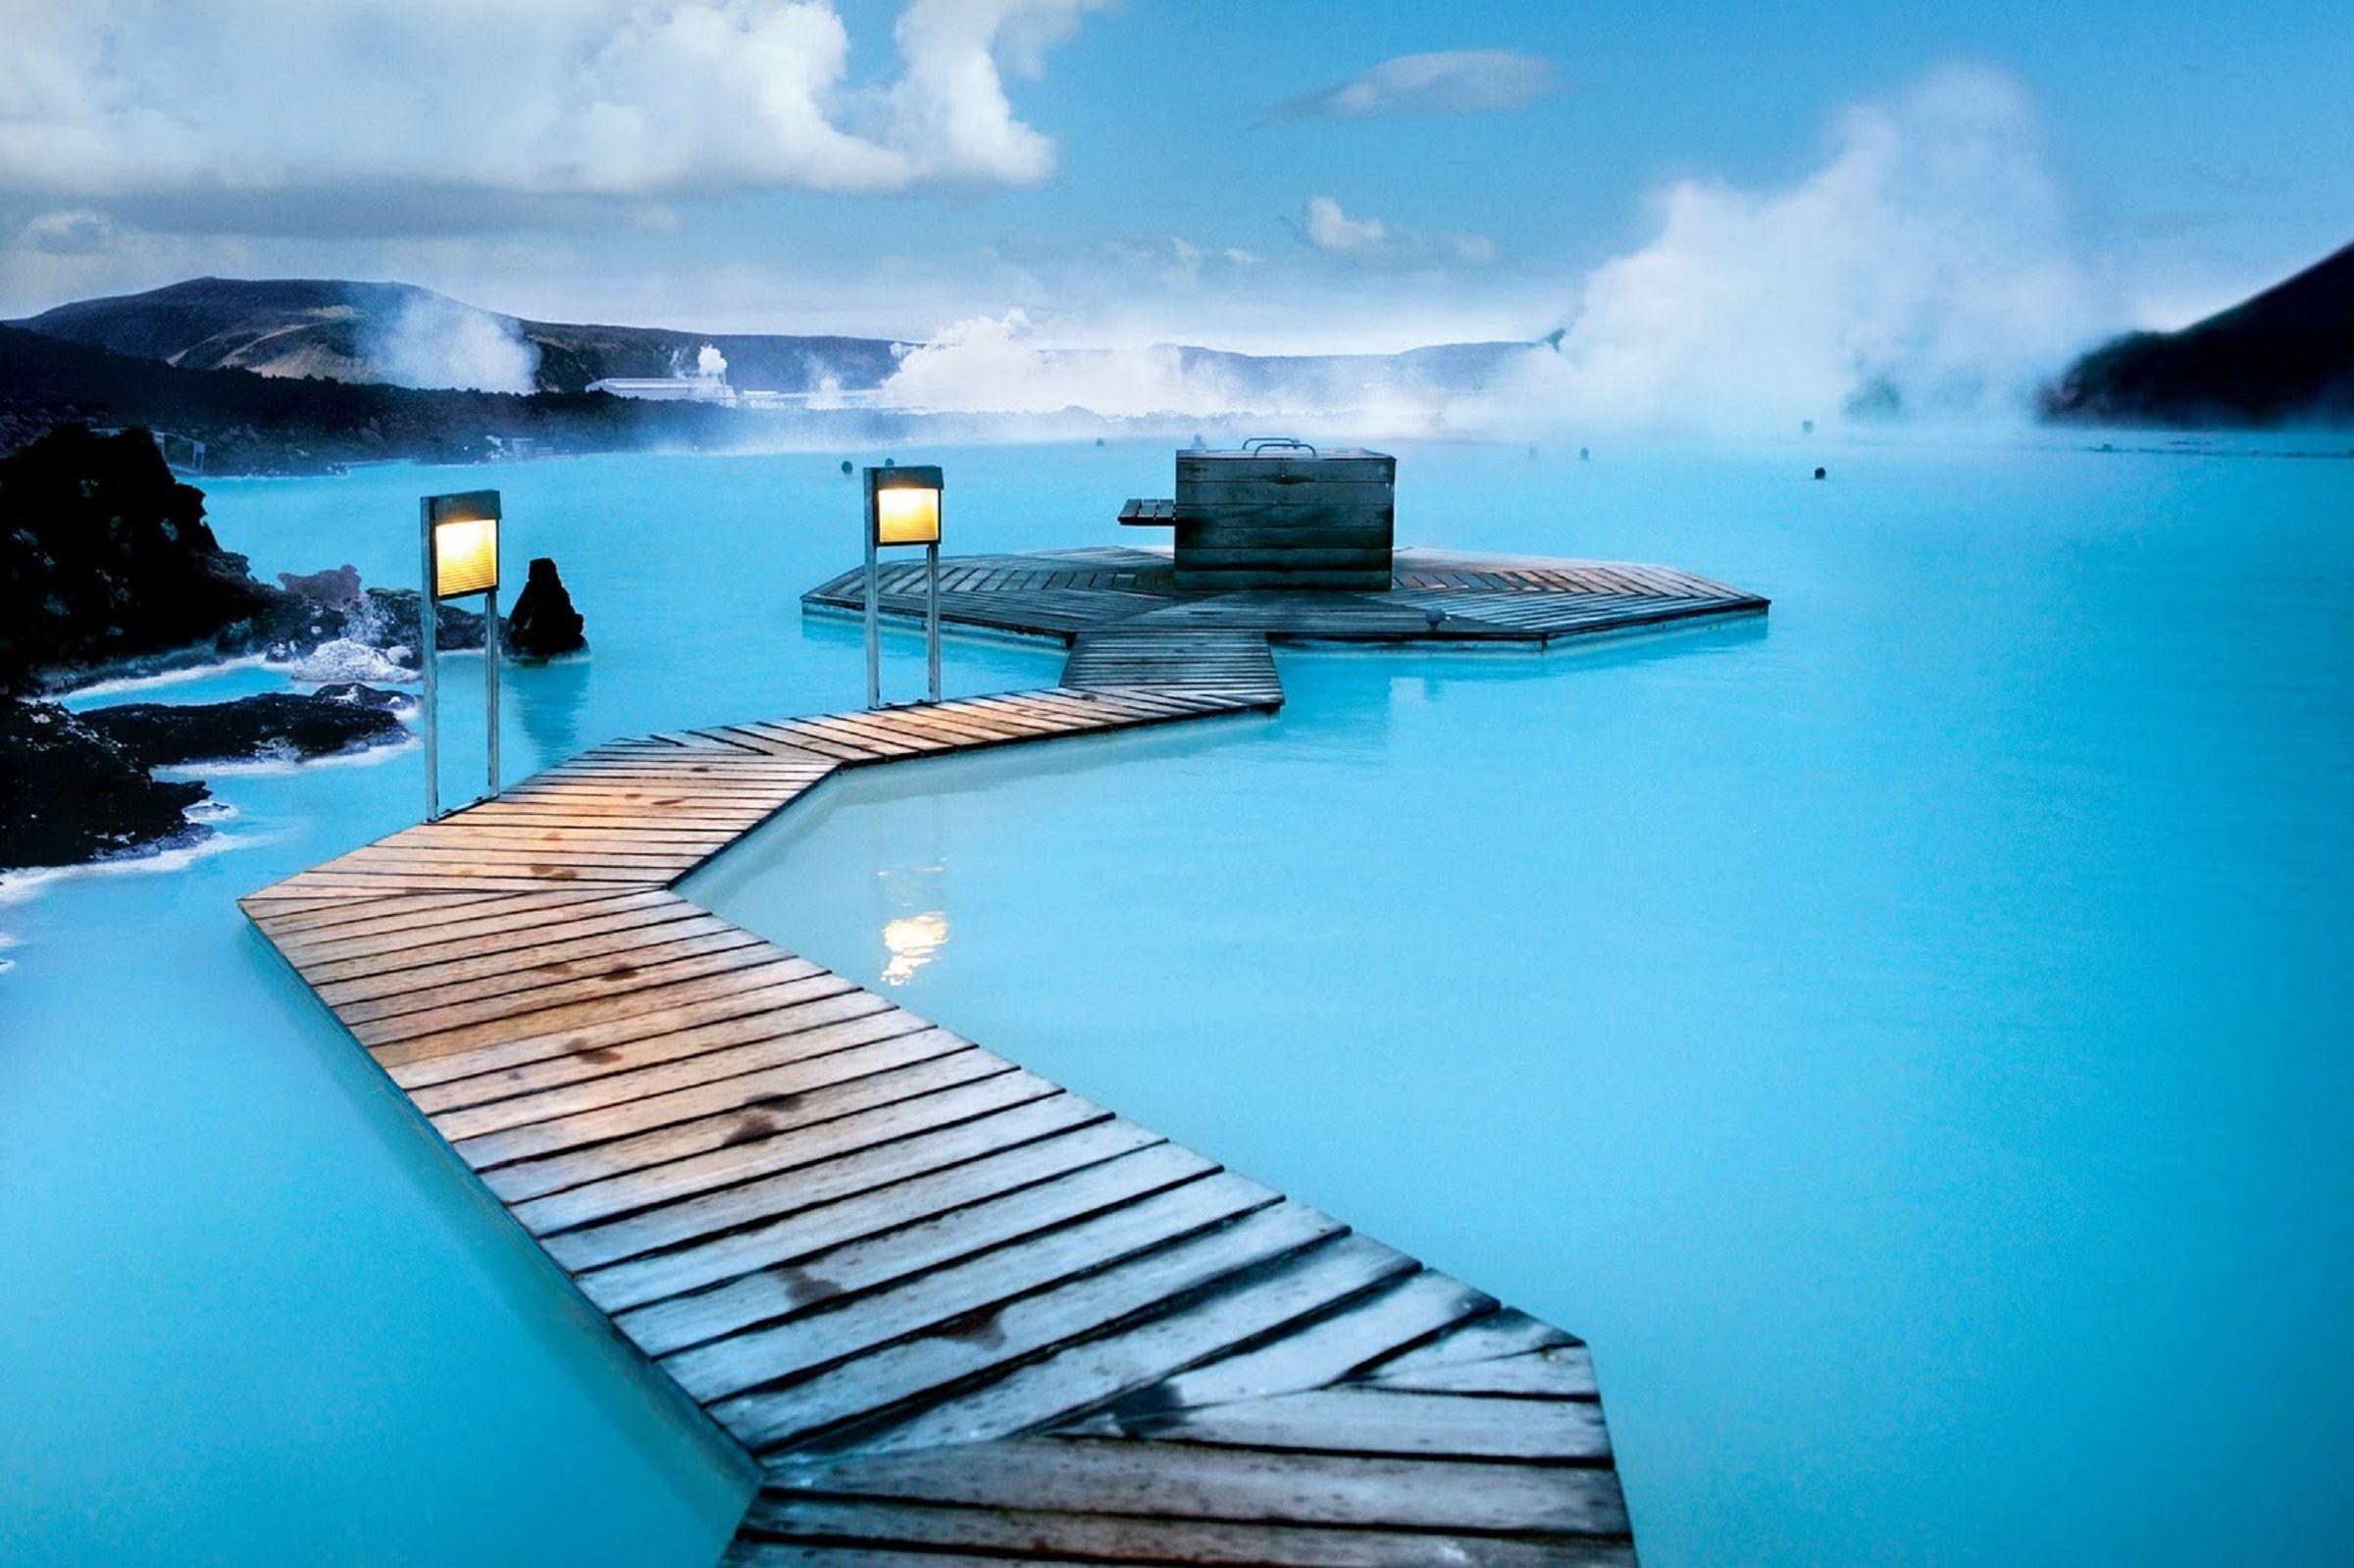 Iceland Blue Lagoon HD Wallpaper, Backgrounds Image